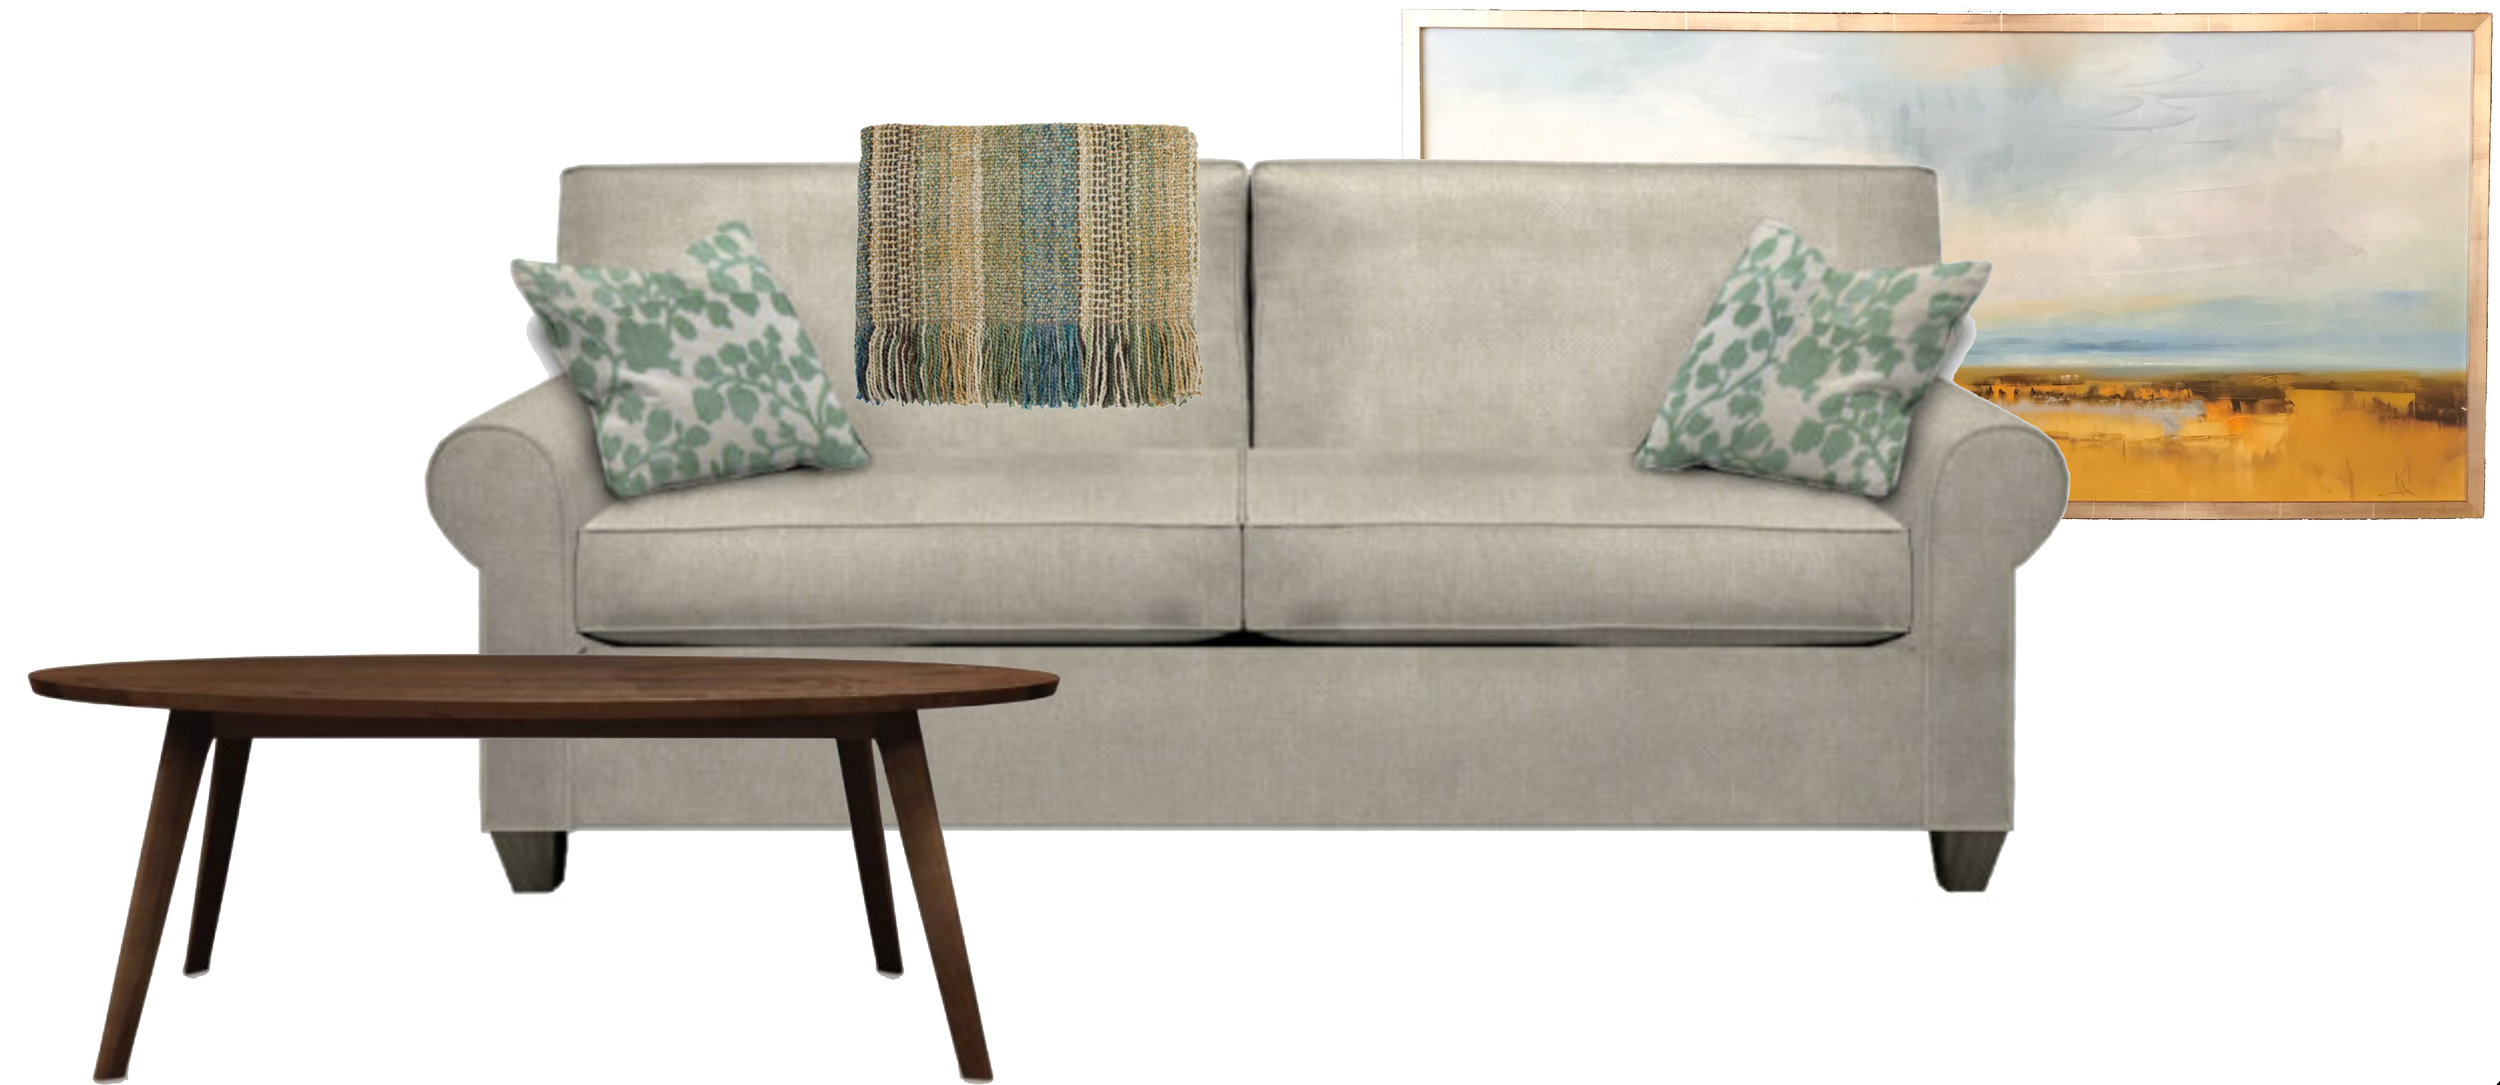 Furniture from left to right: Walnut table (Vermont), Knotting Hill sofa, Nestology collection (Ohio), Stripe knit throw (New Hampshire). More customization options available.